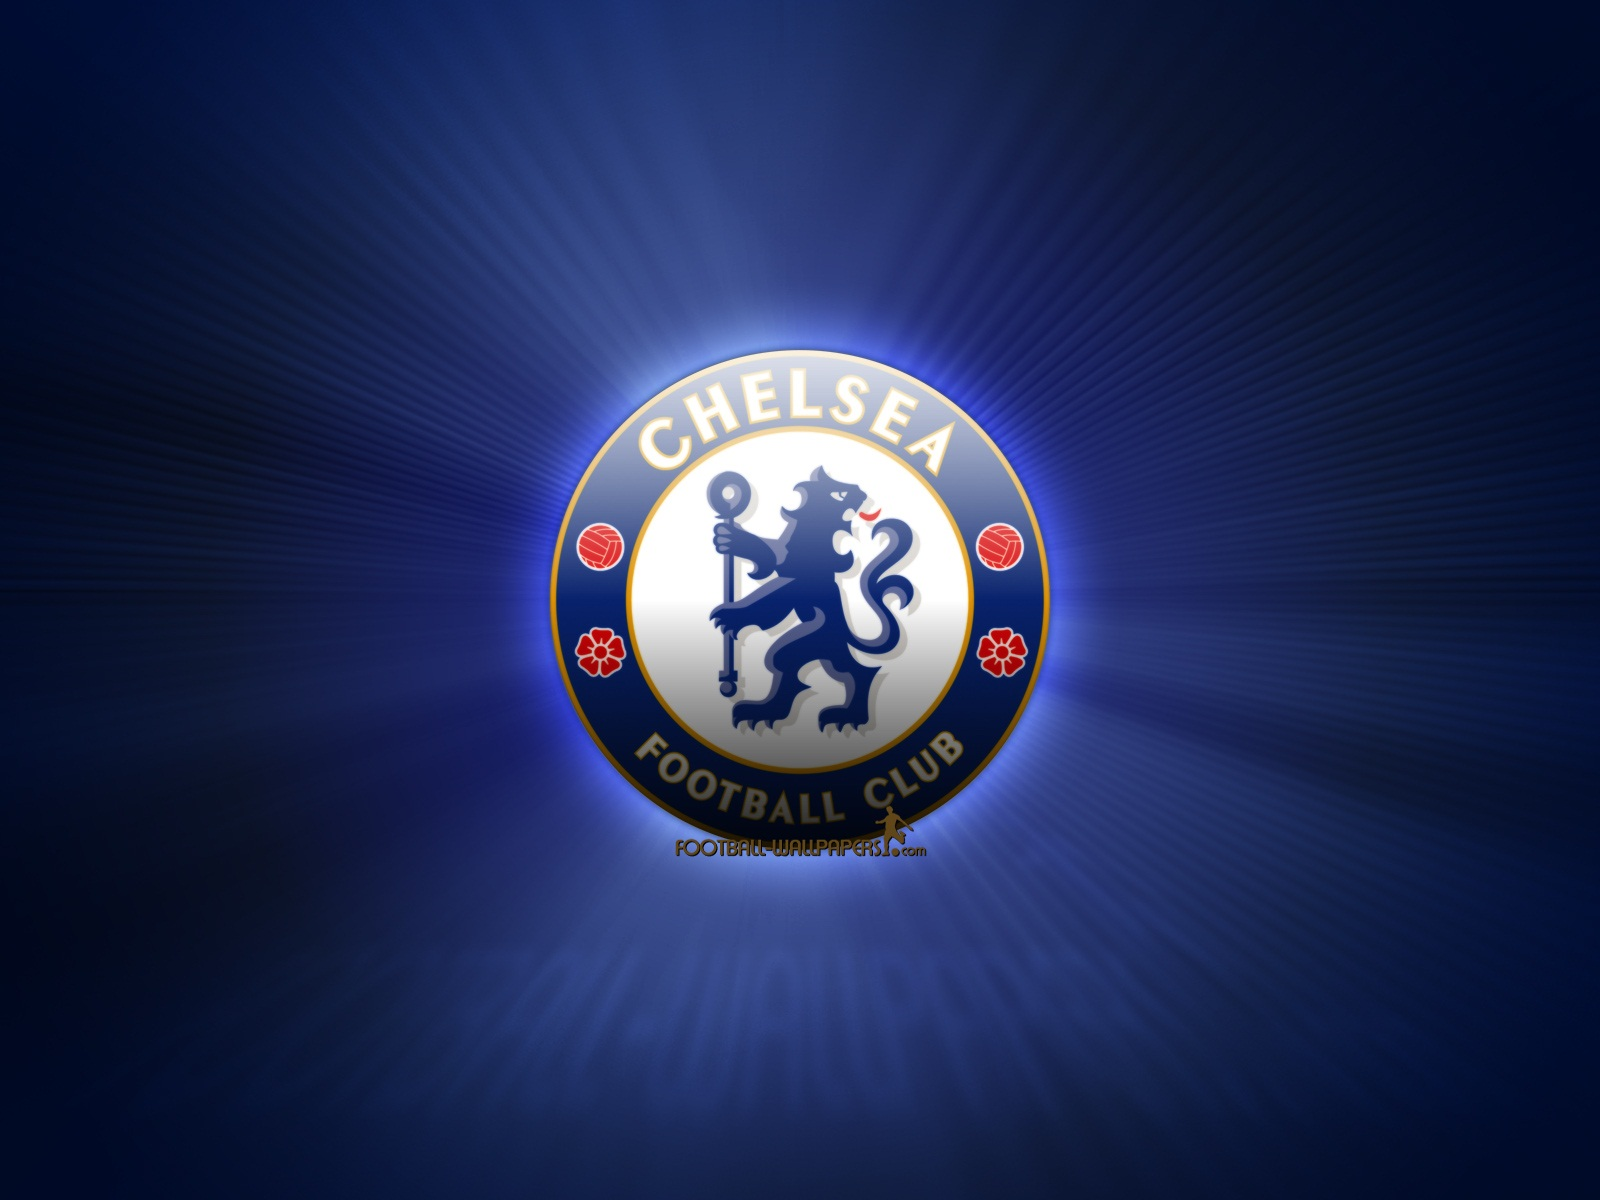 chelsea wallpapers on Chelsea Fc 1600x1200 Wallpapers Download   Desktop Wallpapers  Hd And